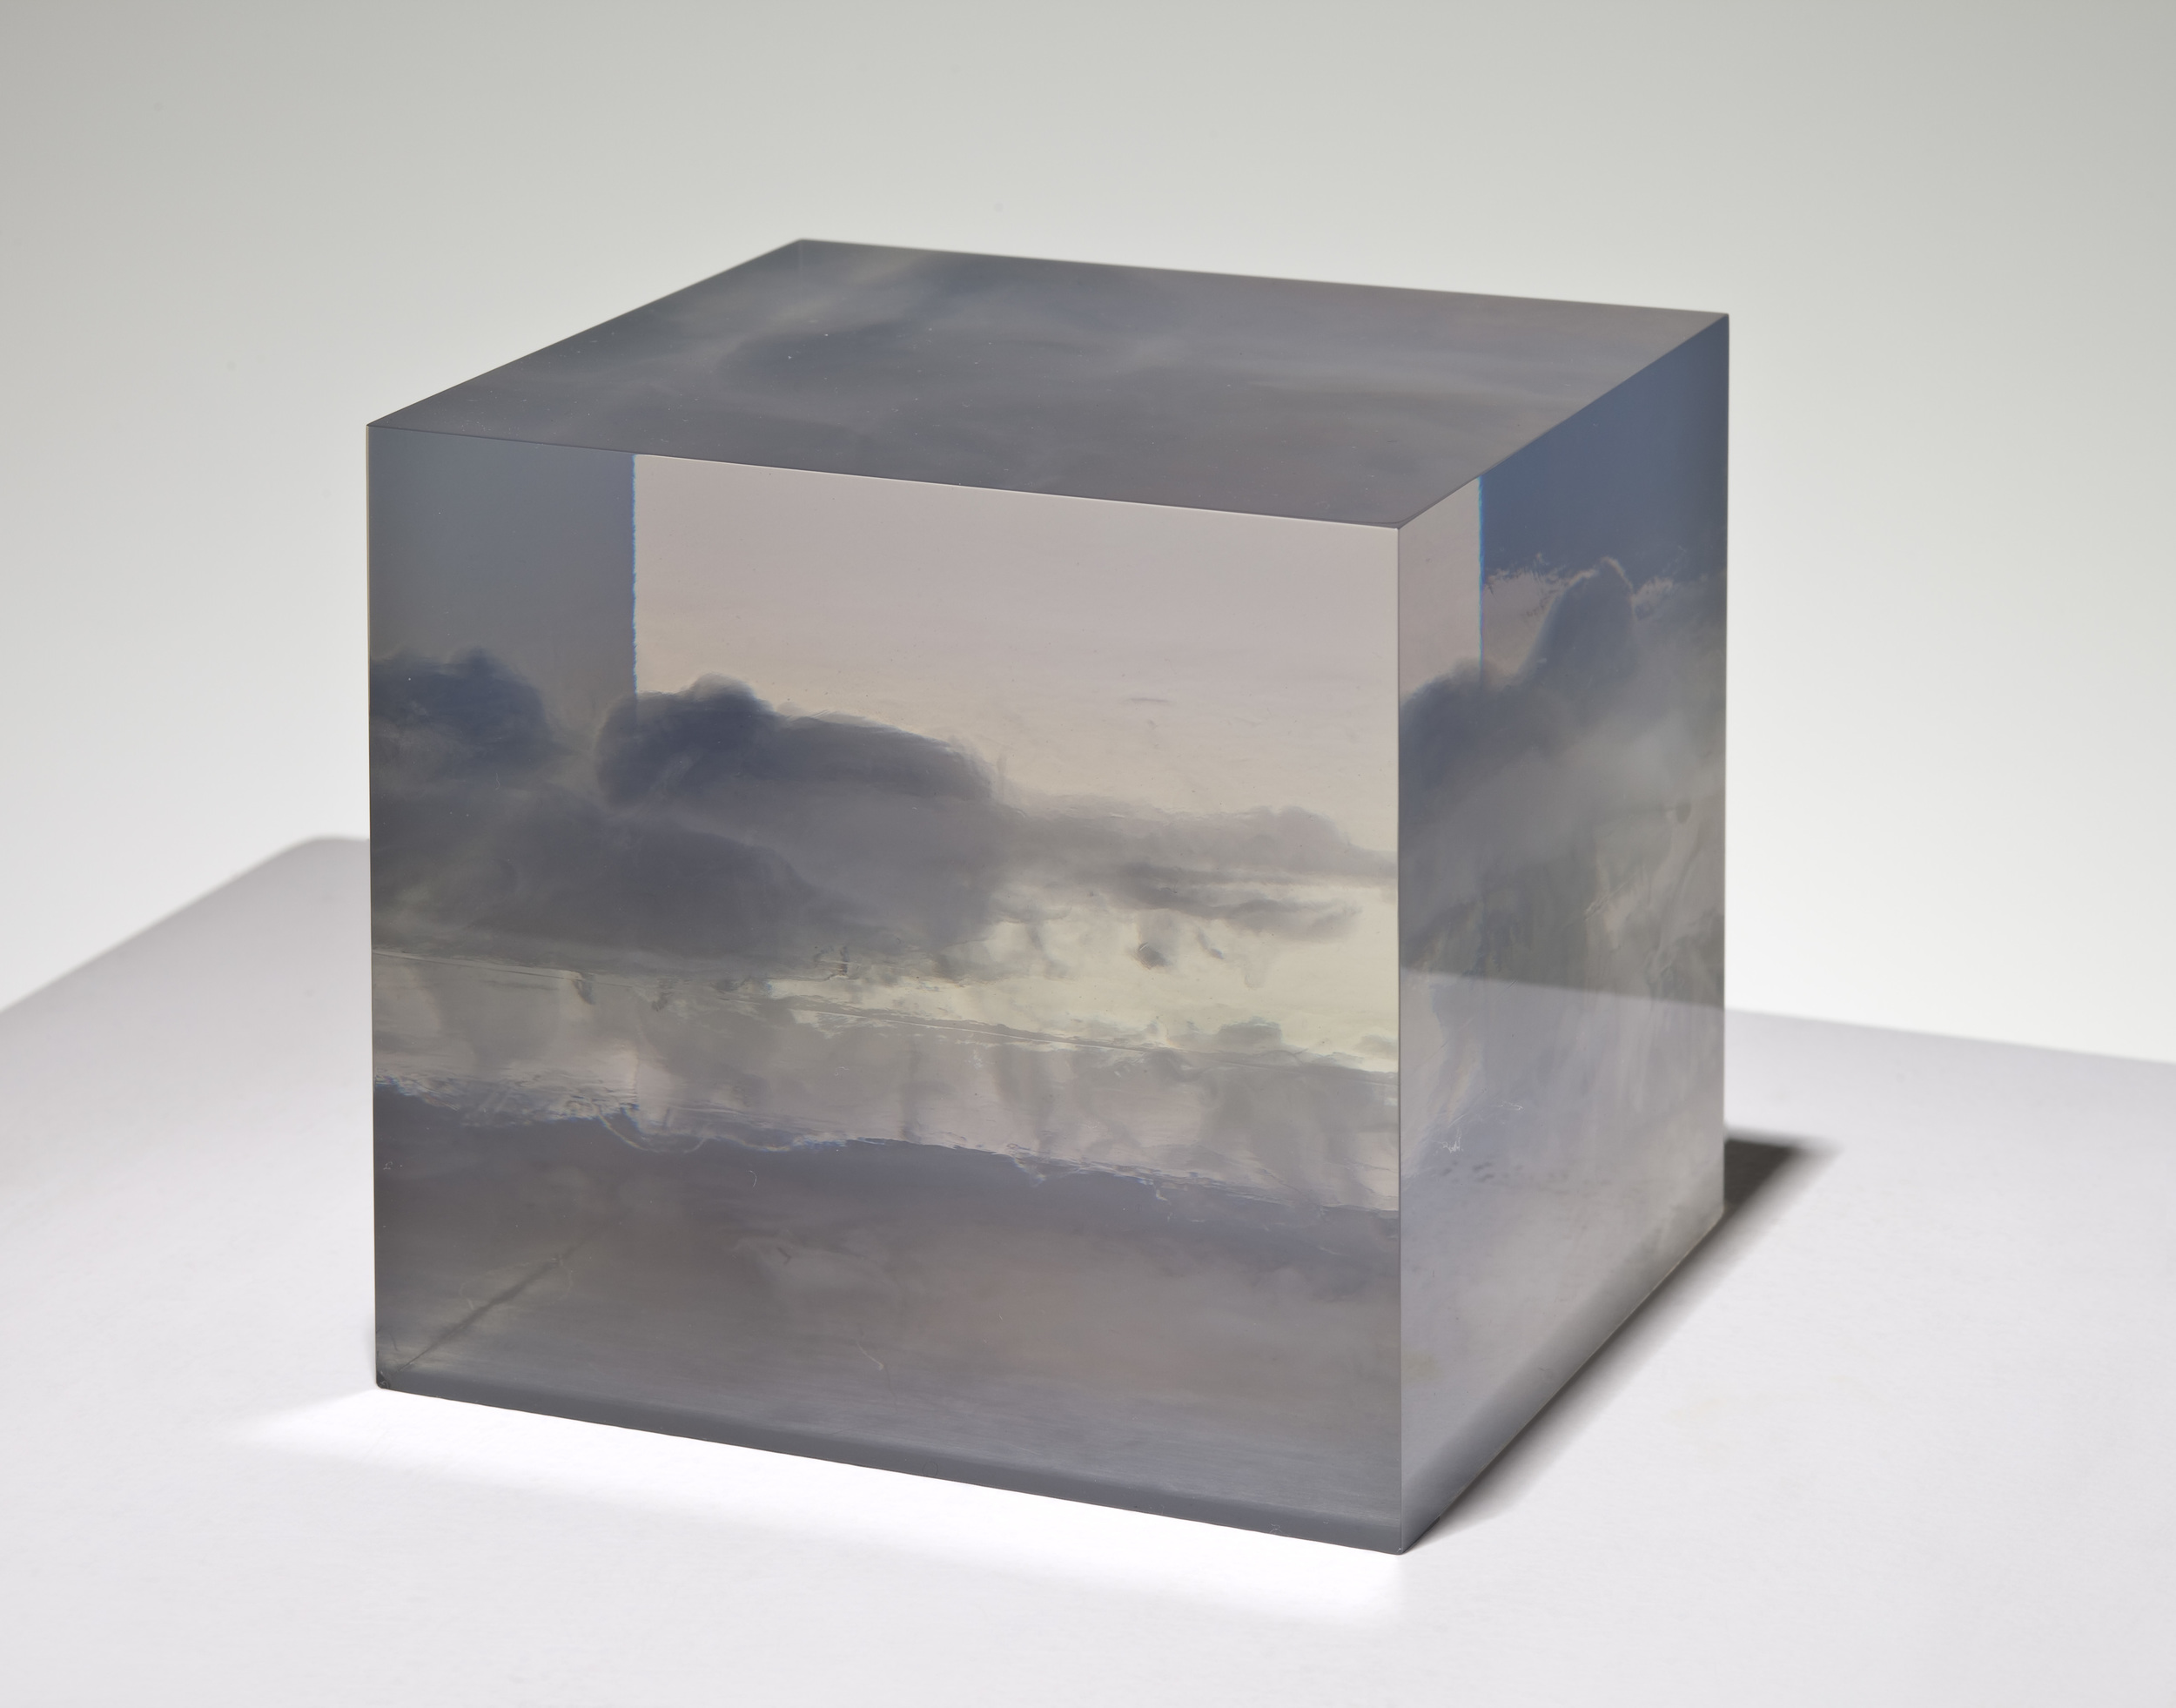 Peter Alexander Small Cloud Box, 1966 polyester resin 5 x 5 x 5 inches Image courtesy of Parrasch Heijnen Gallery